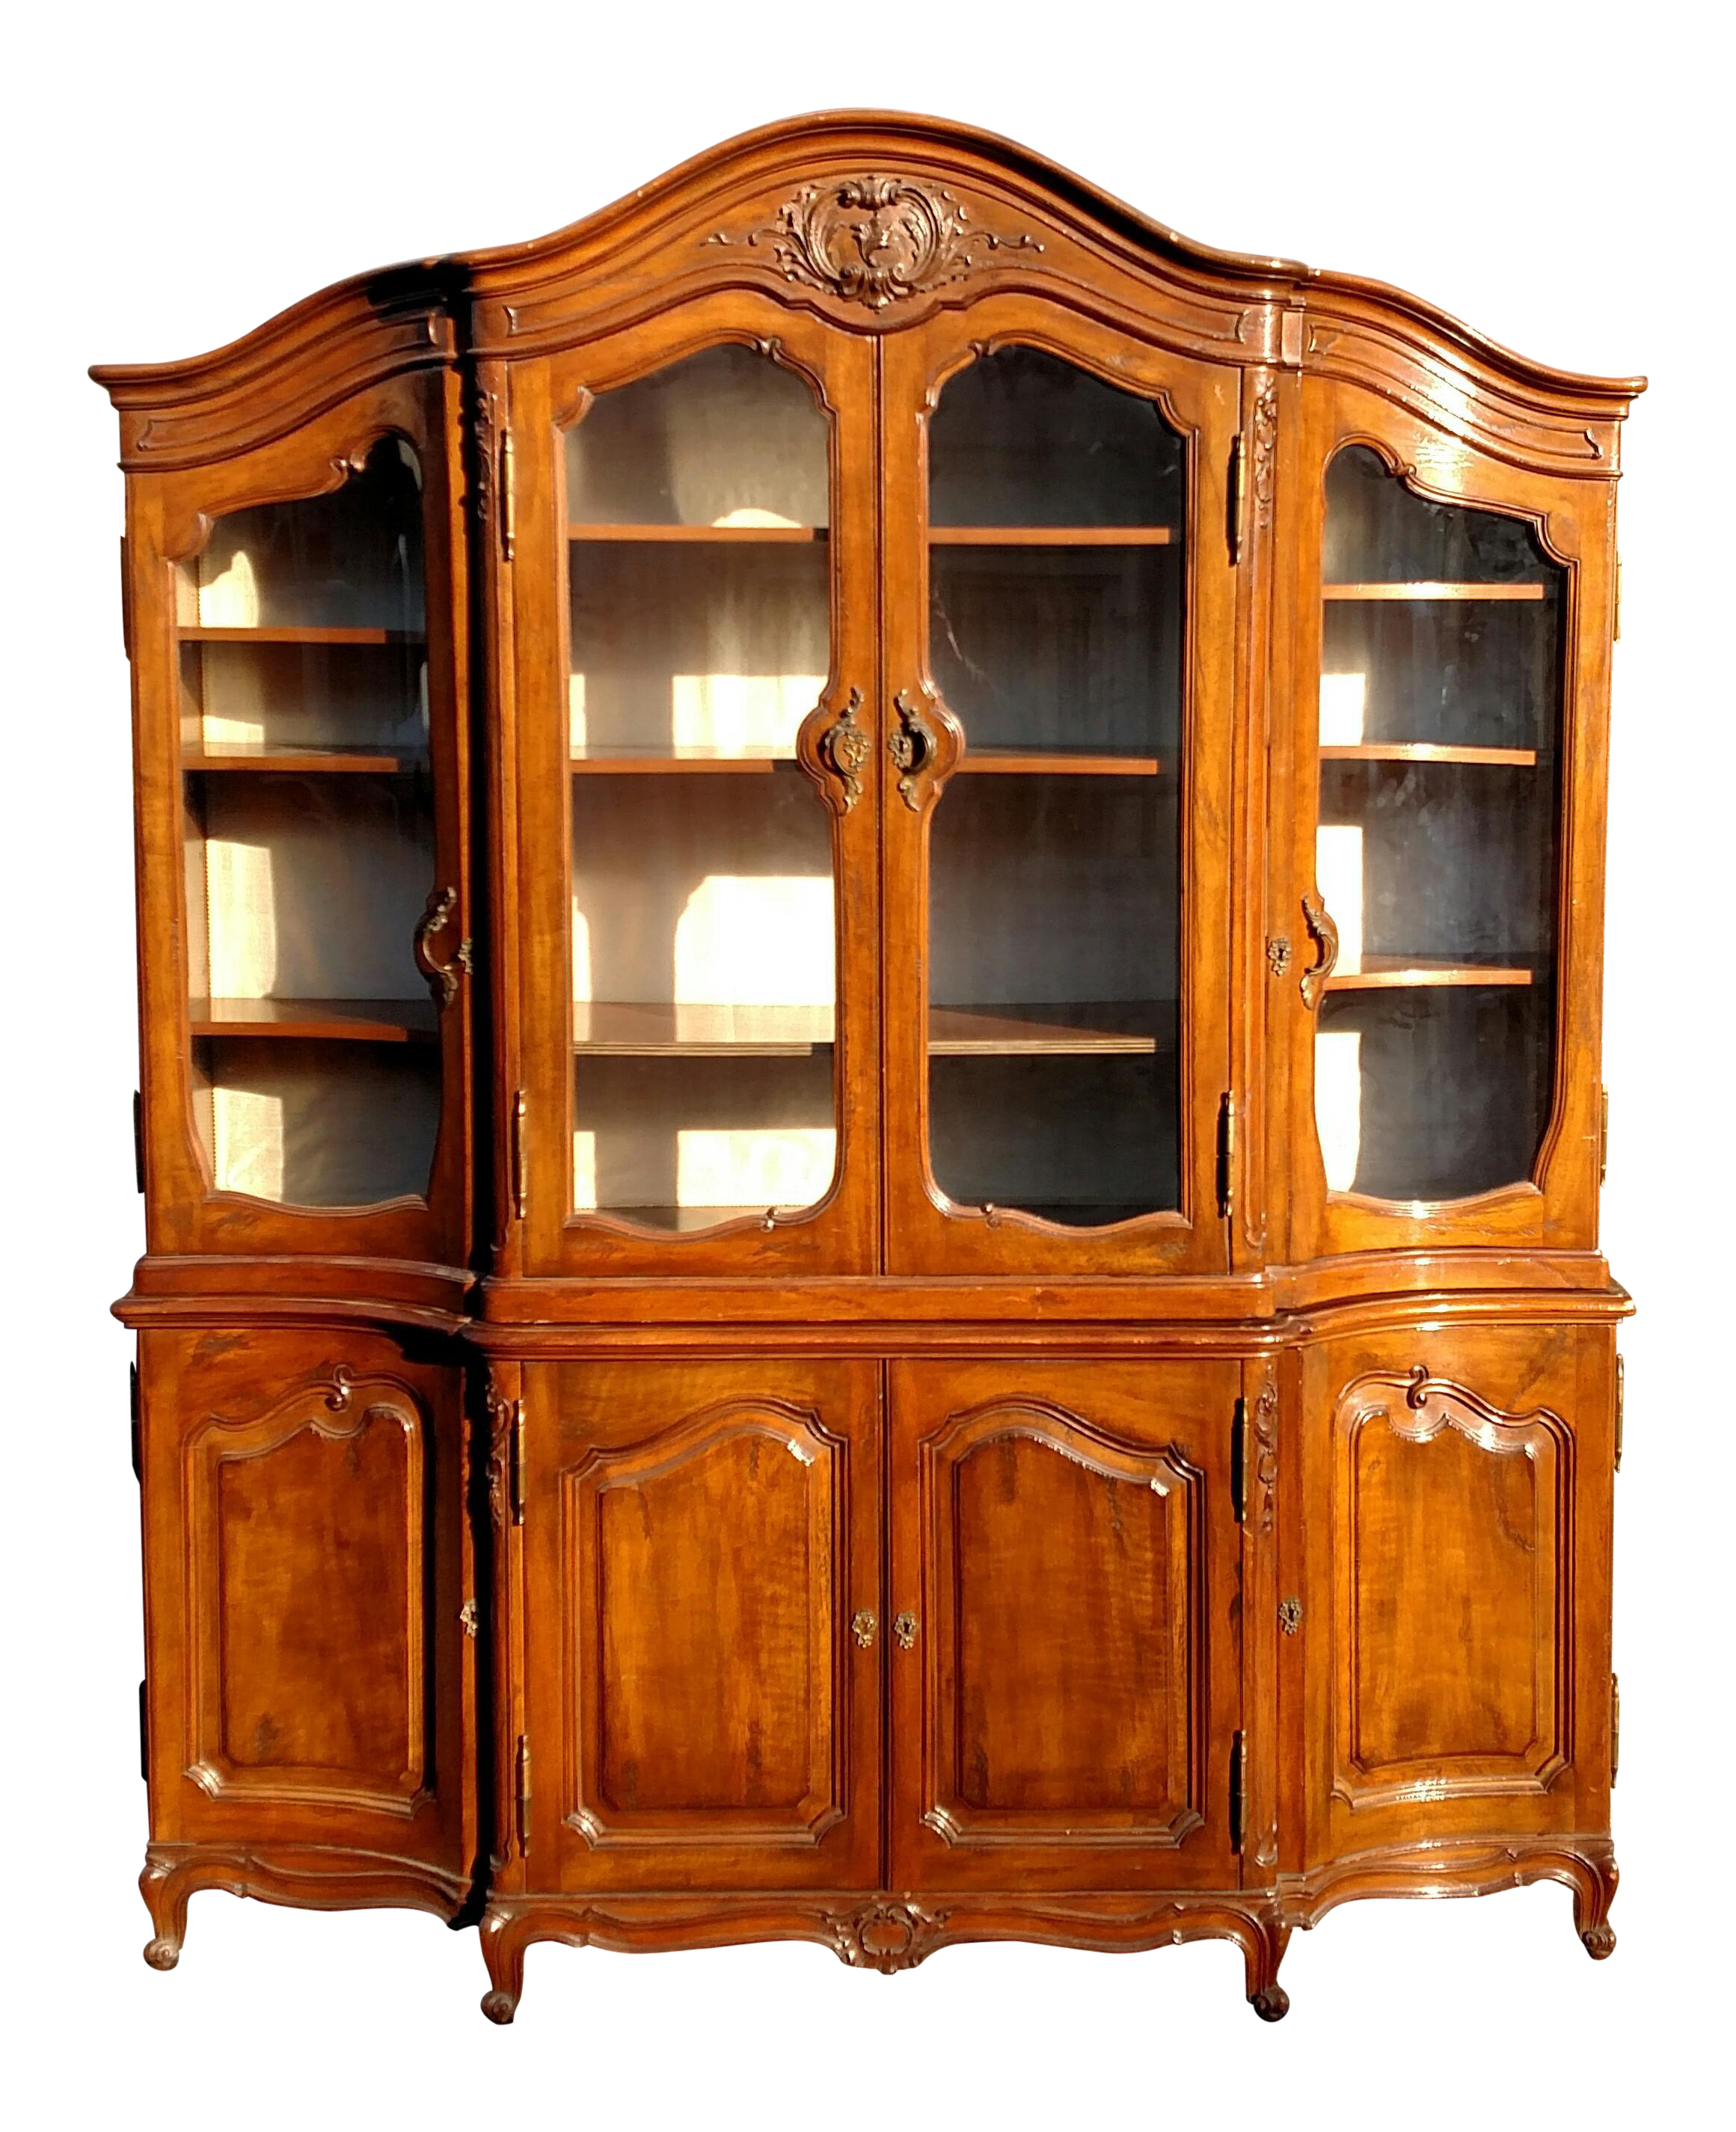 or english lighted bookcases drexel travis desk vintage court china cabinet new breakfront antique mahogany bookcase cabinets sold